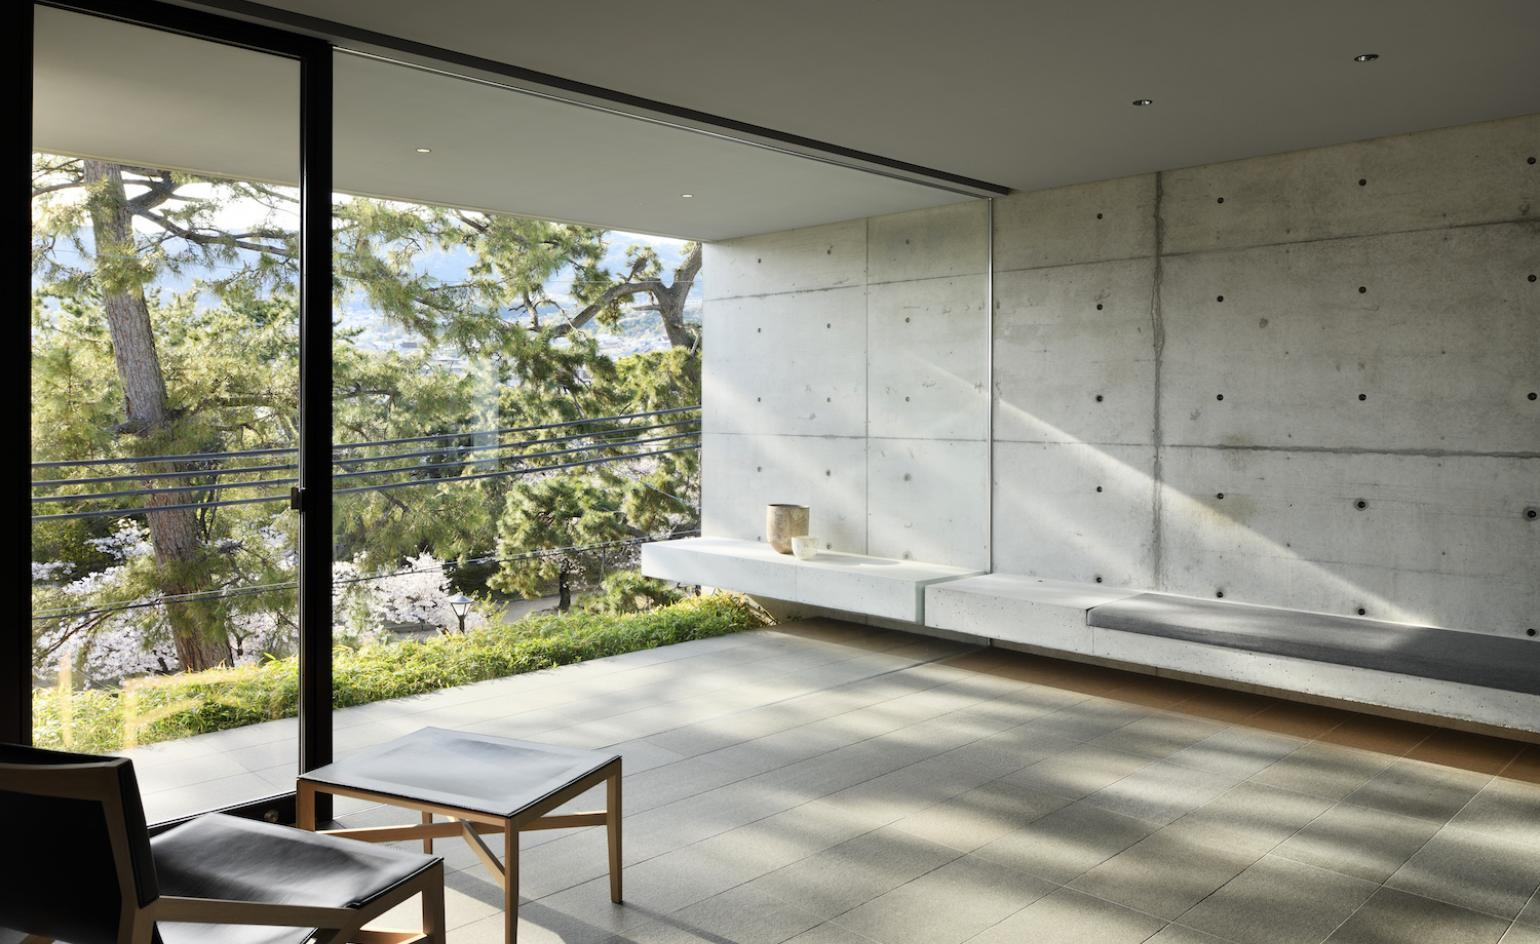 Japanese architect Go Fujita designs a concrete live/work space for himself